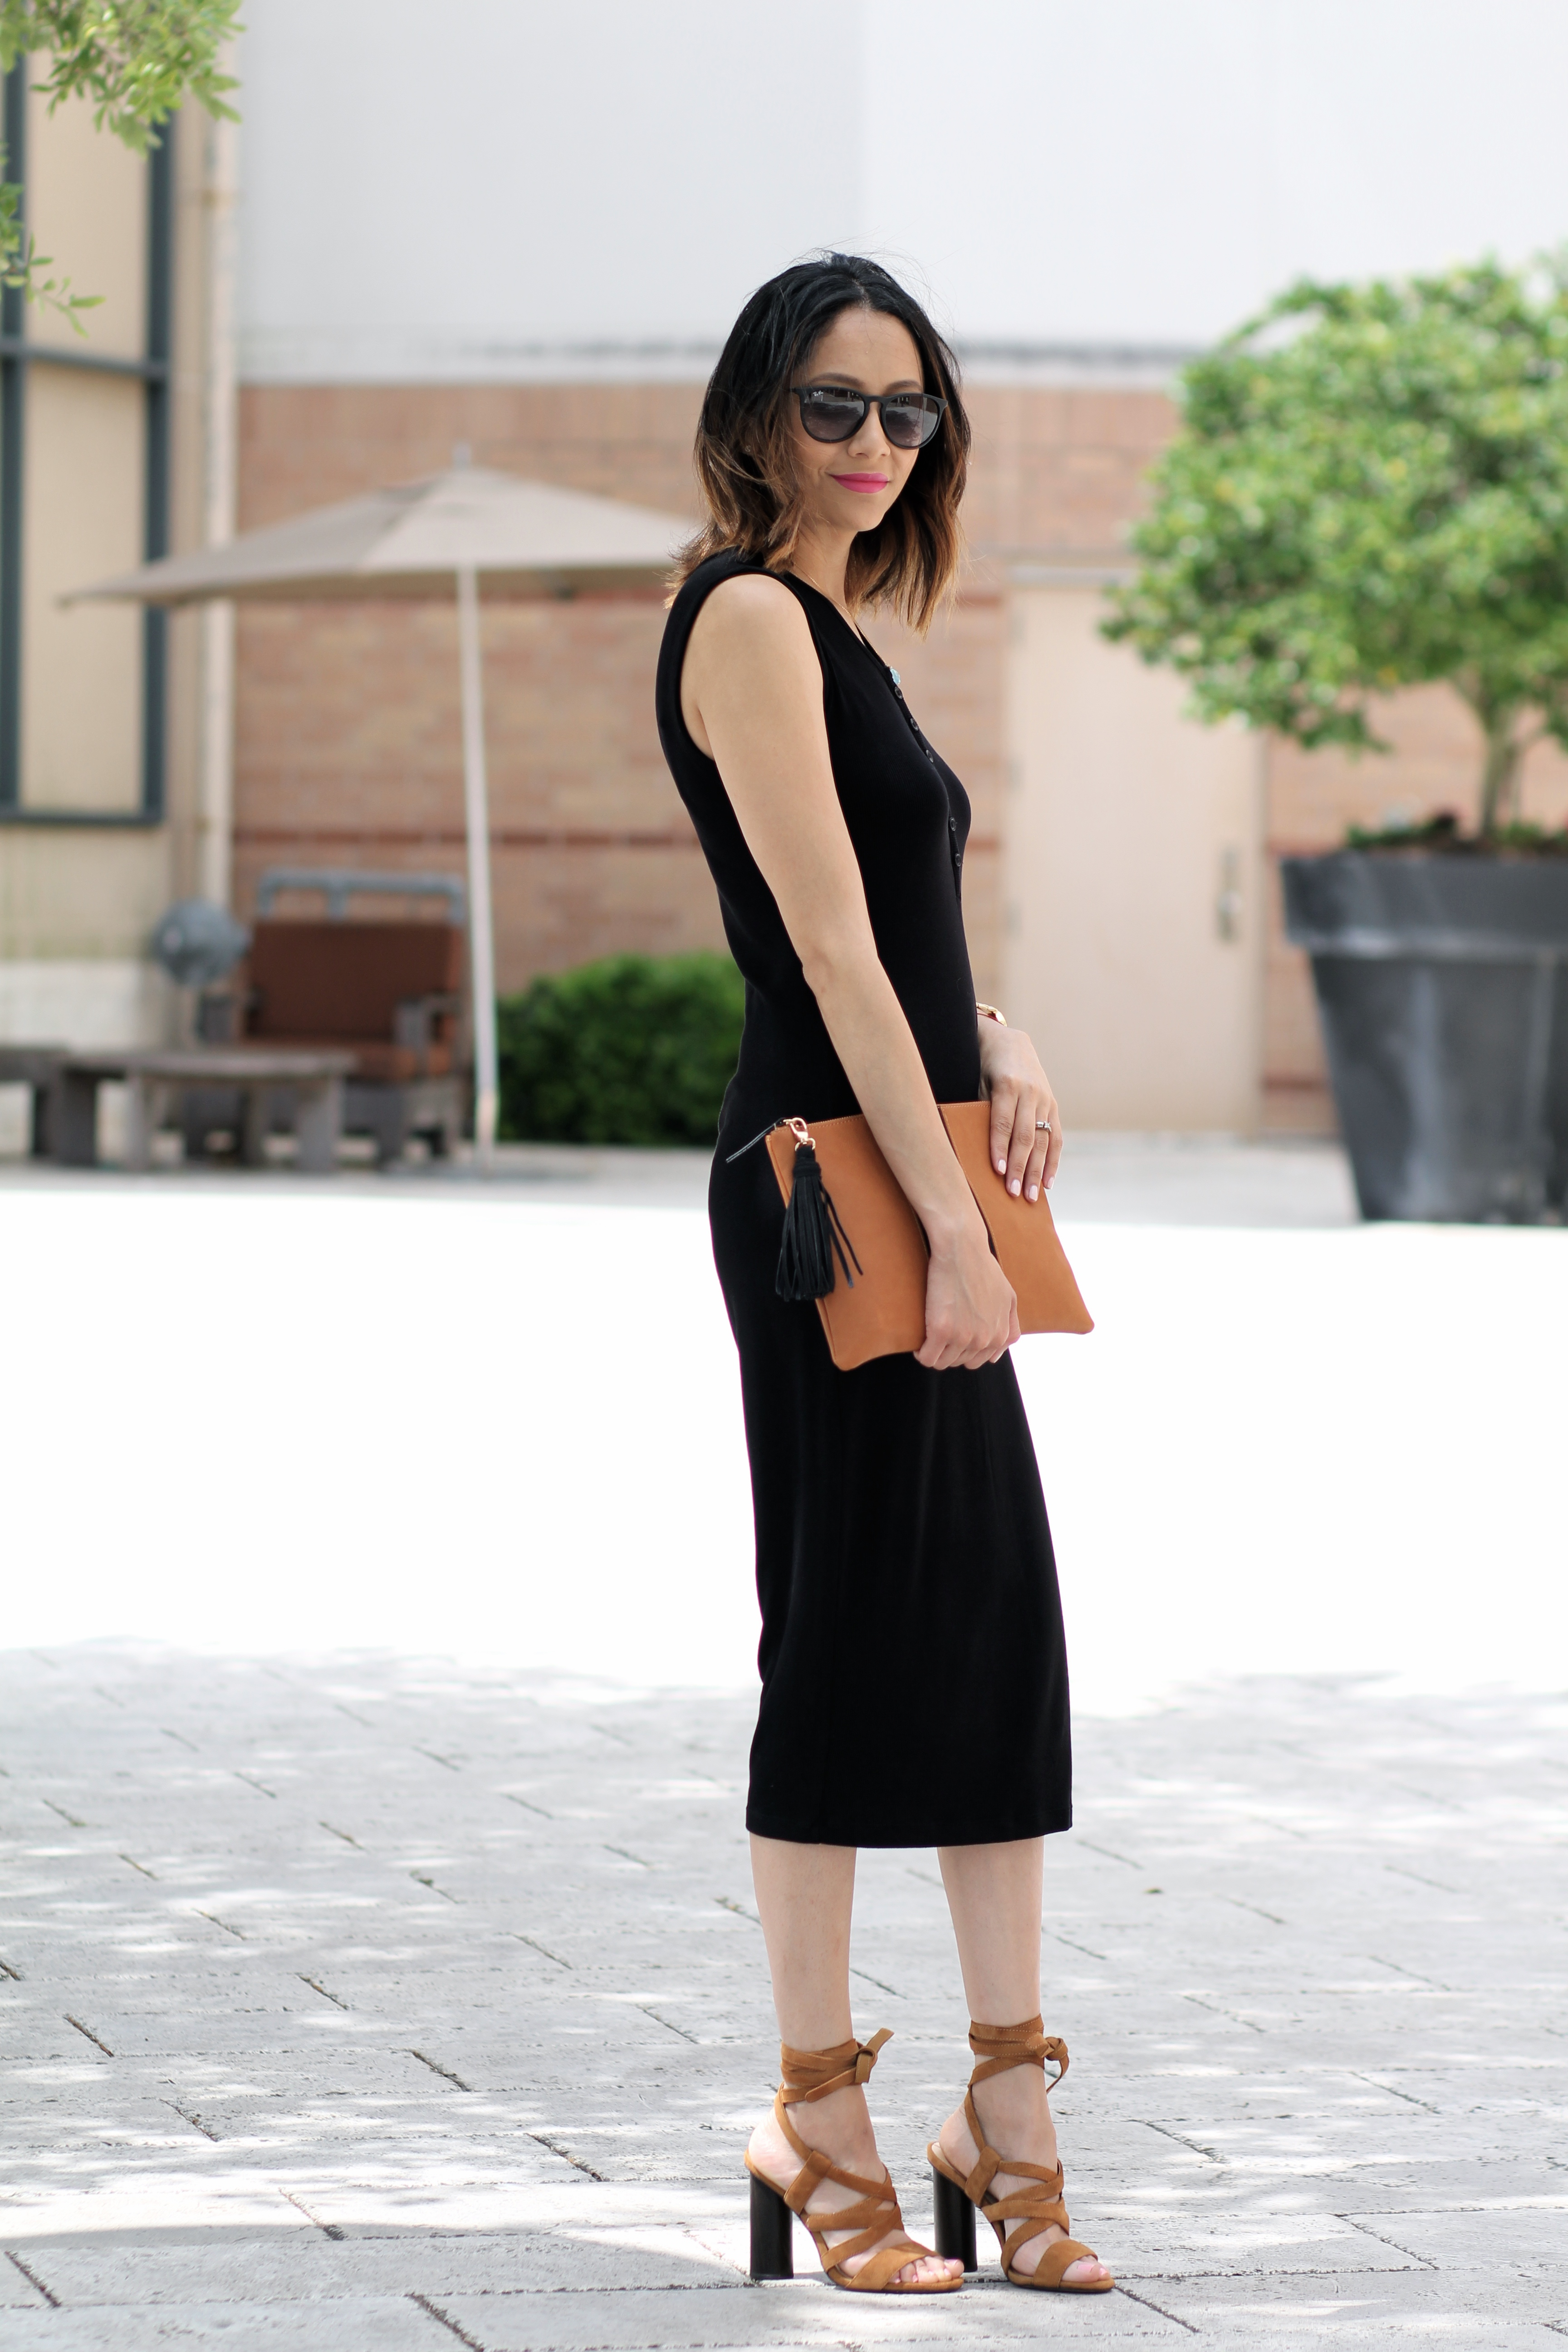 Easy spring outfit | Black henley midi dress & suede lace up sandals